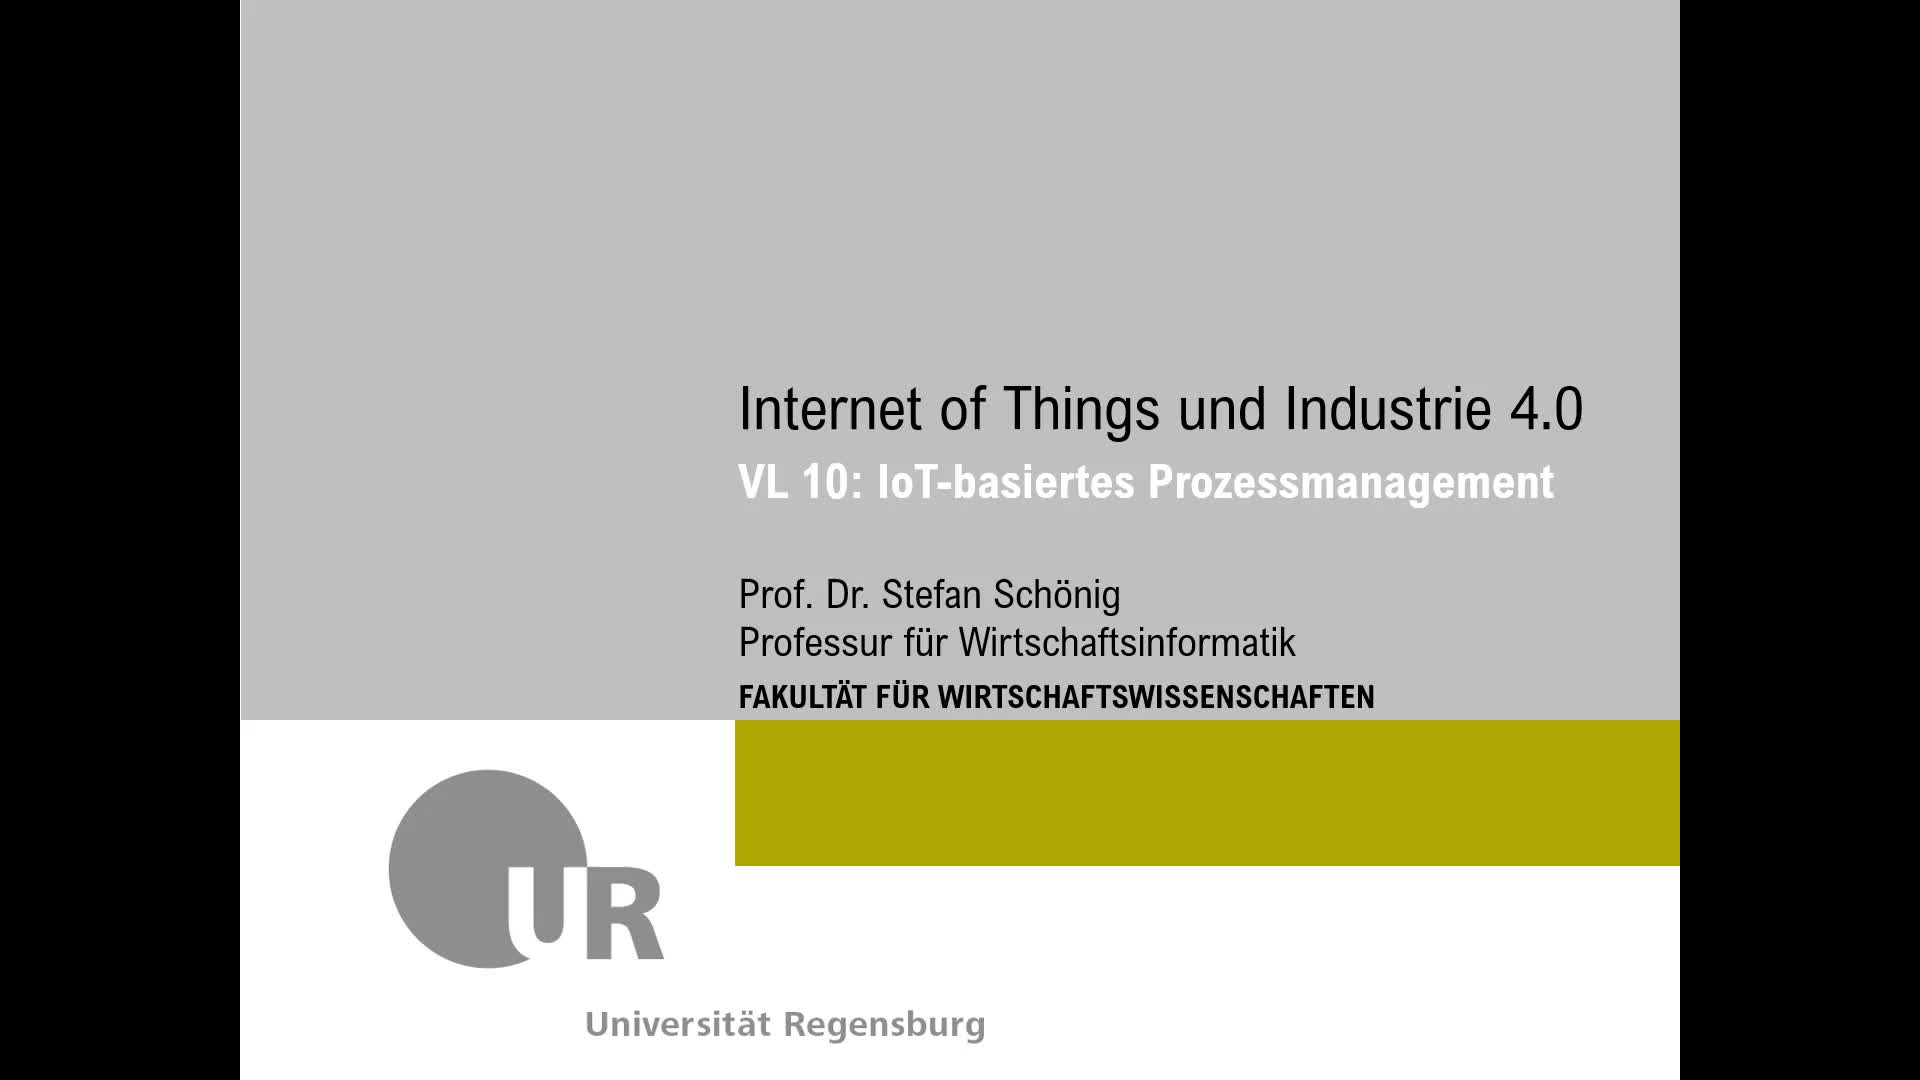 SS 2020 - Internet of Things und Industrie 4.0 - Kapitel 10 (IoT-basiertes Prozessmanagement - Konzepte)